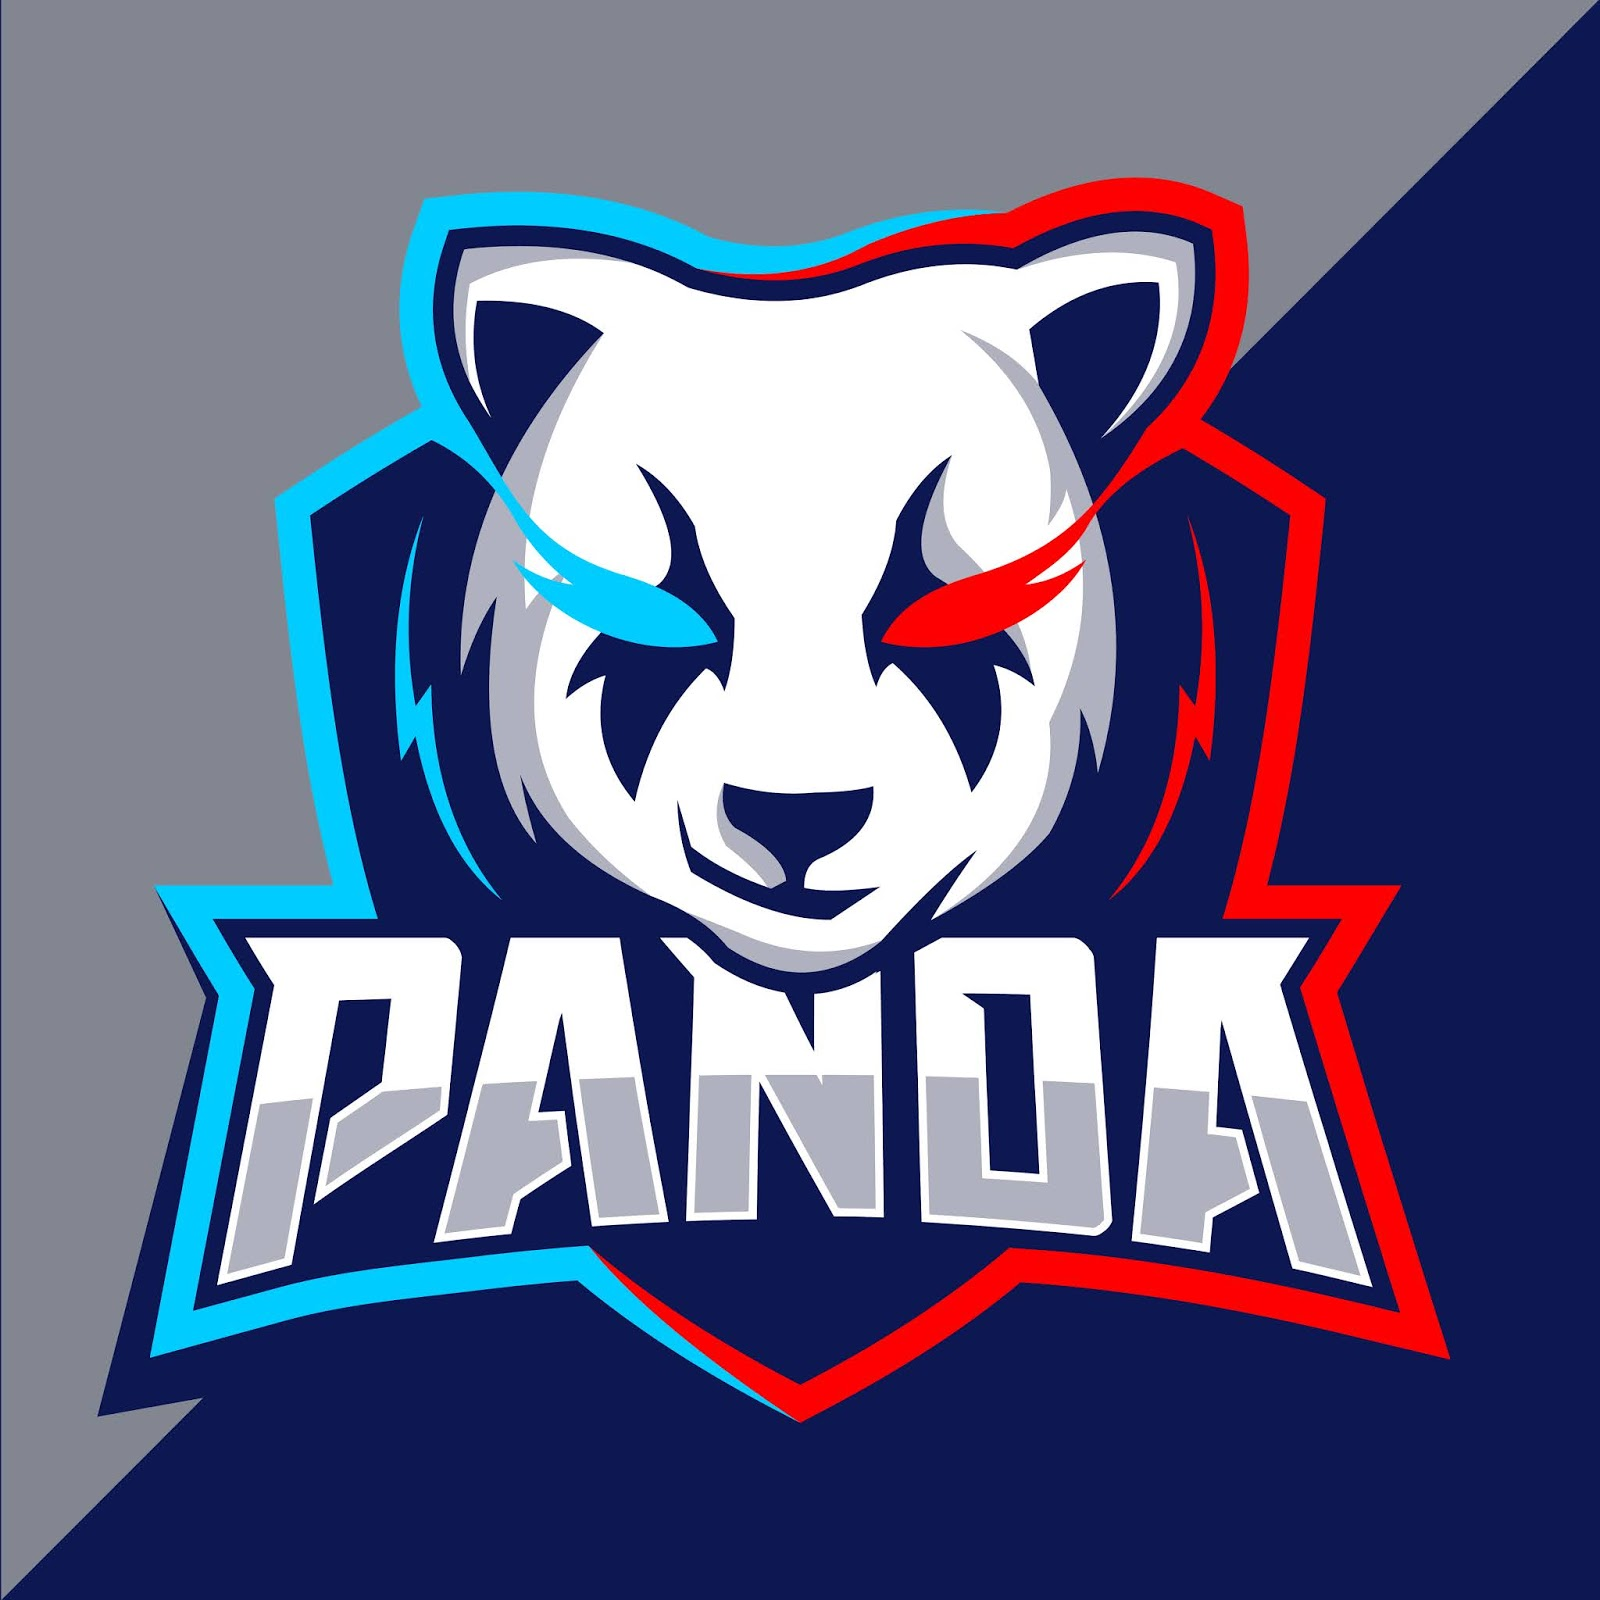 Panda Mascot Esport Logo Style Free Download Vector CDR, AI, EPS and PNG Formats